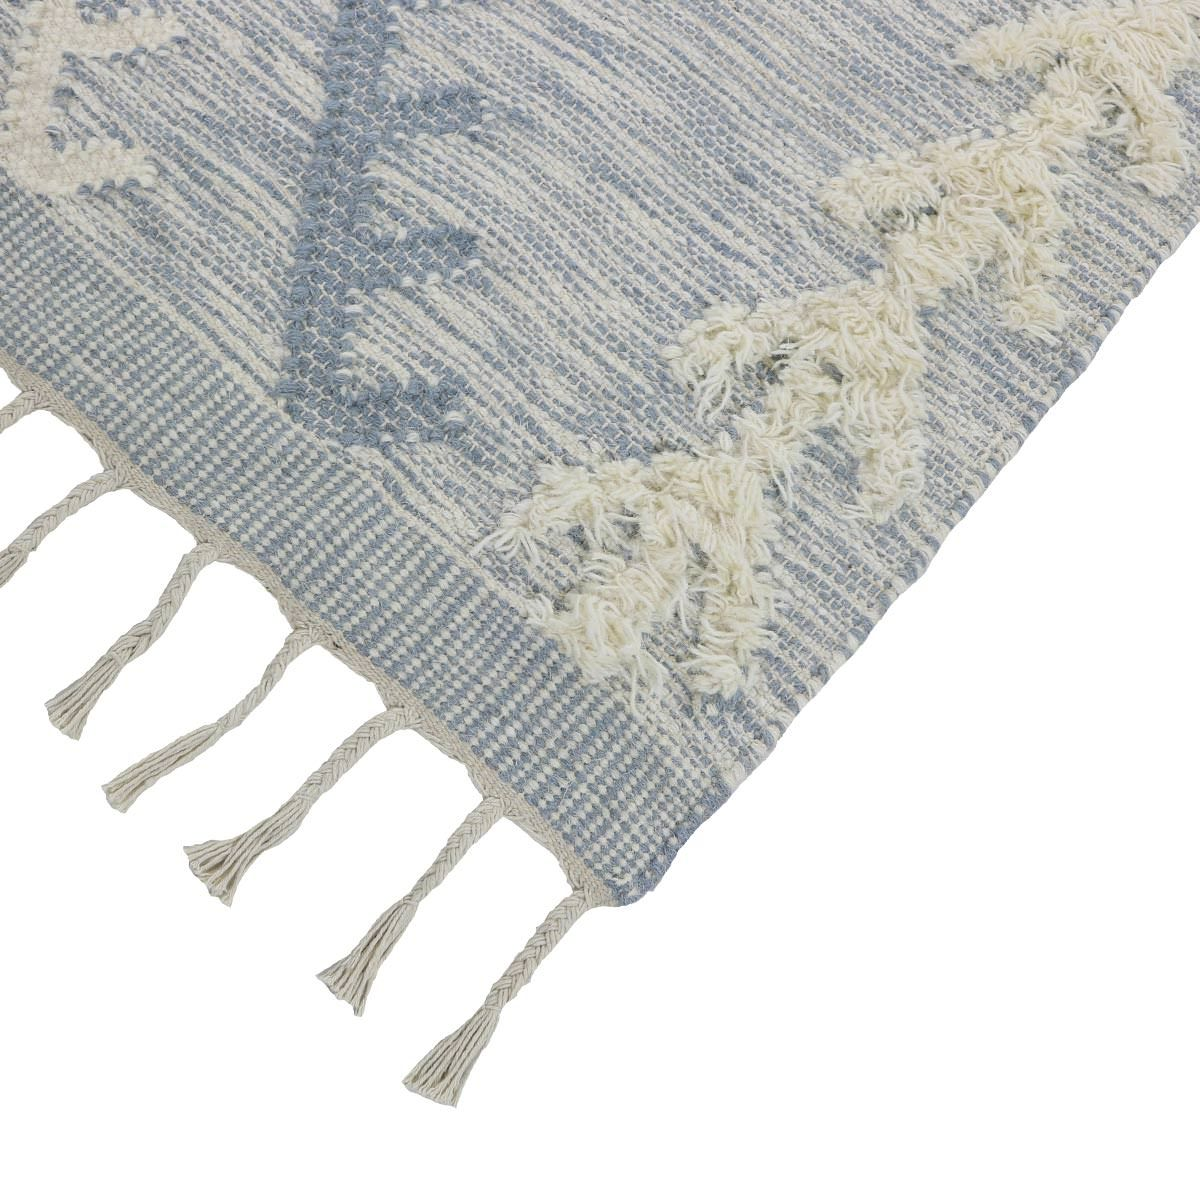 Tangier Rug 05 light blue 6